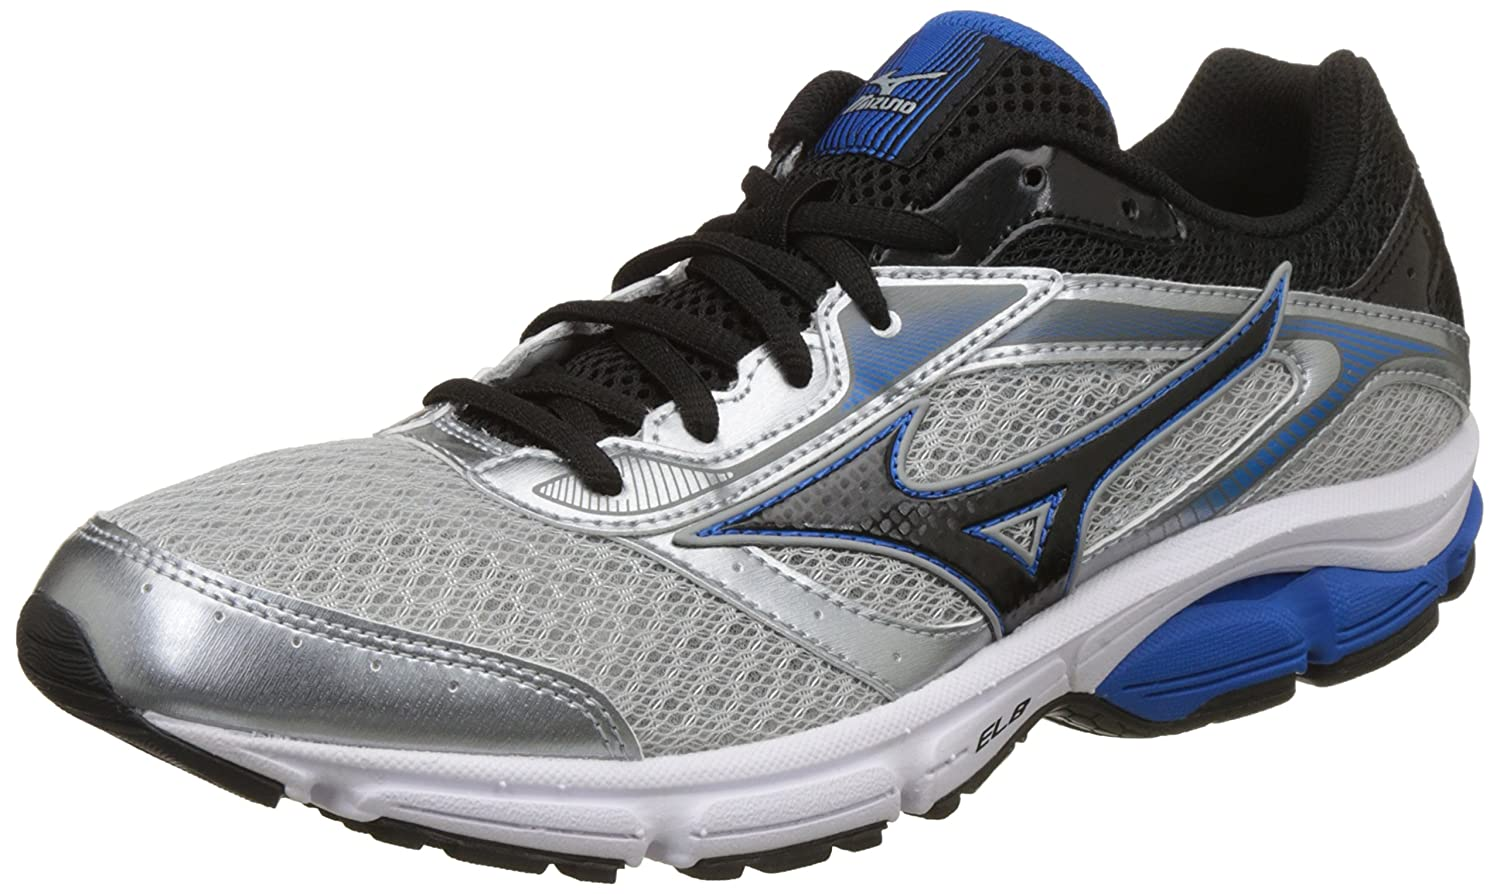 cafa5e9577e5 Mizuno Men's Wave Impetus 4 Running Shoes: Buy Online at Low Prices in  India - Amazon.in